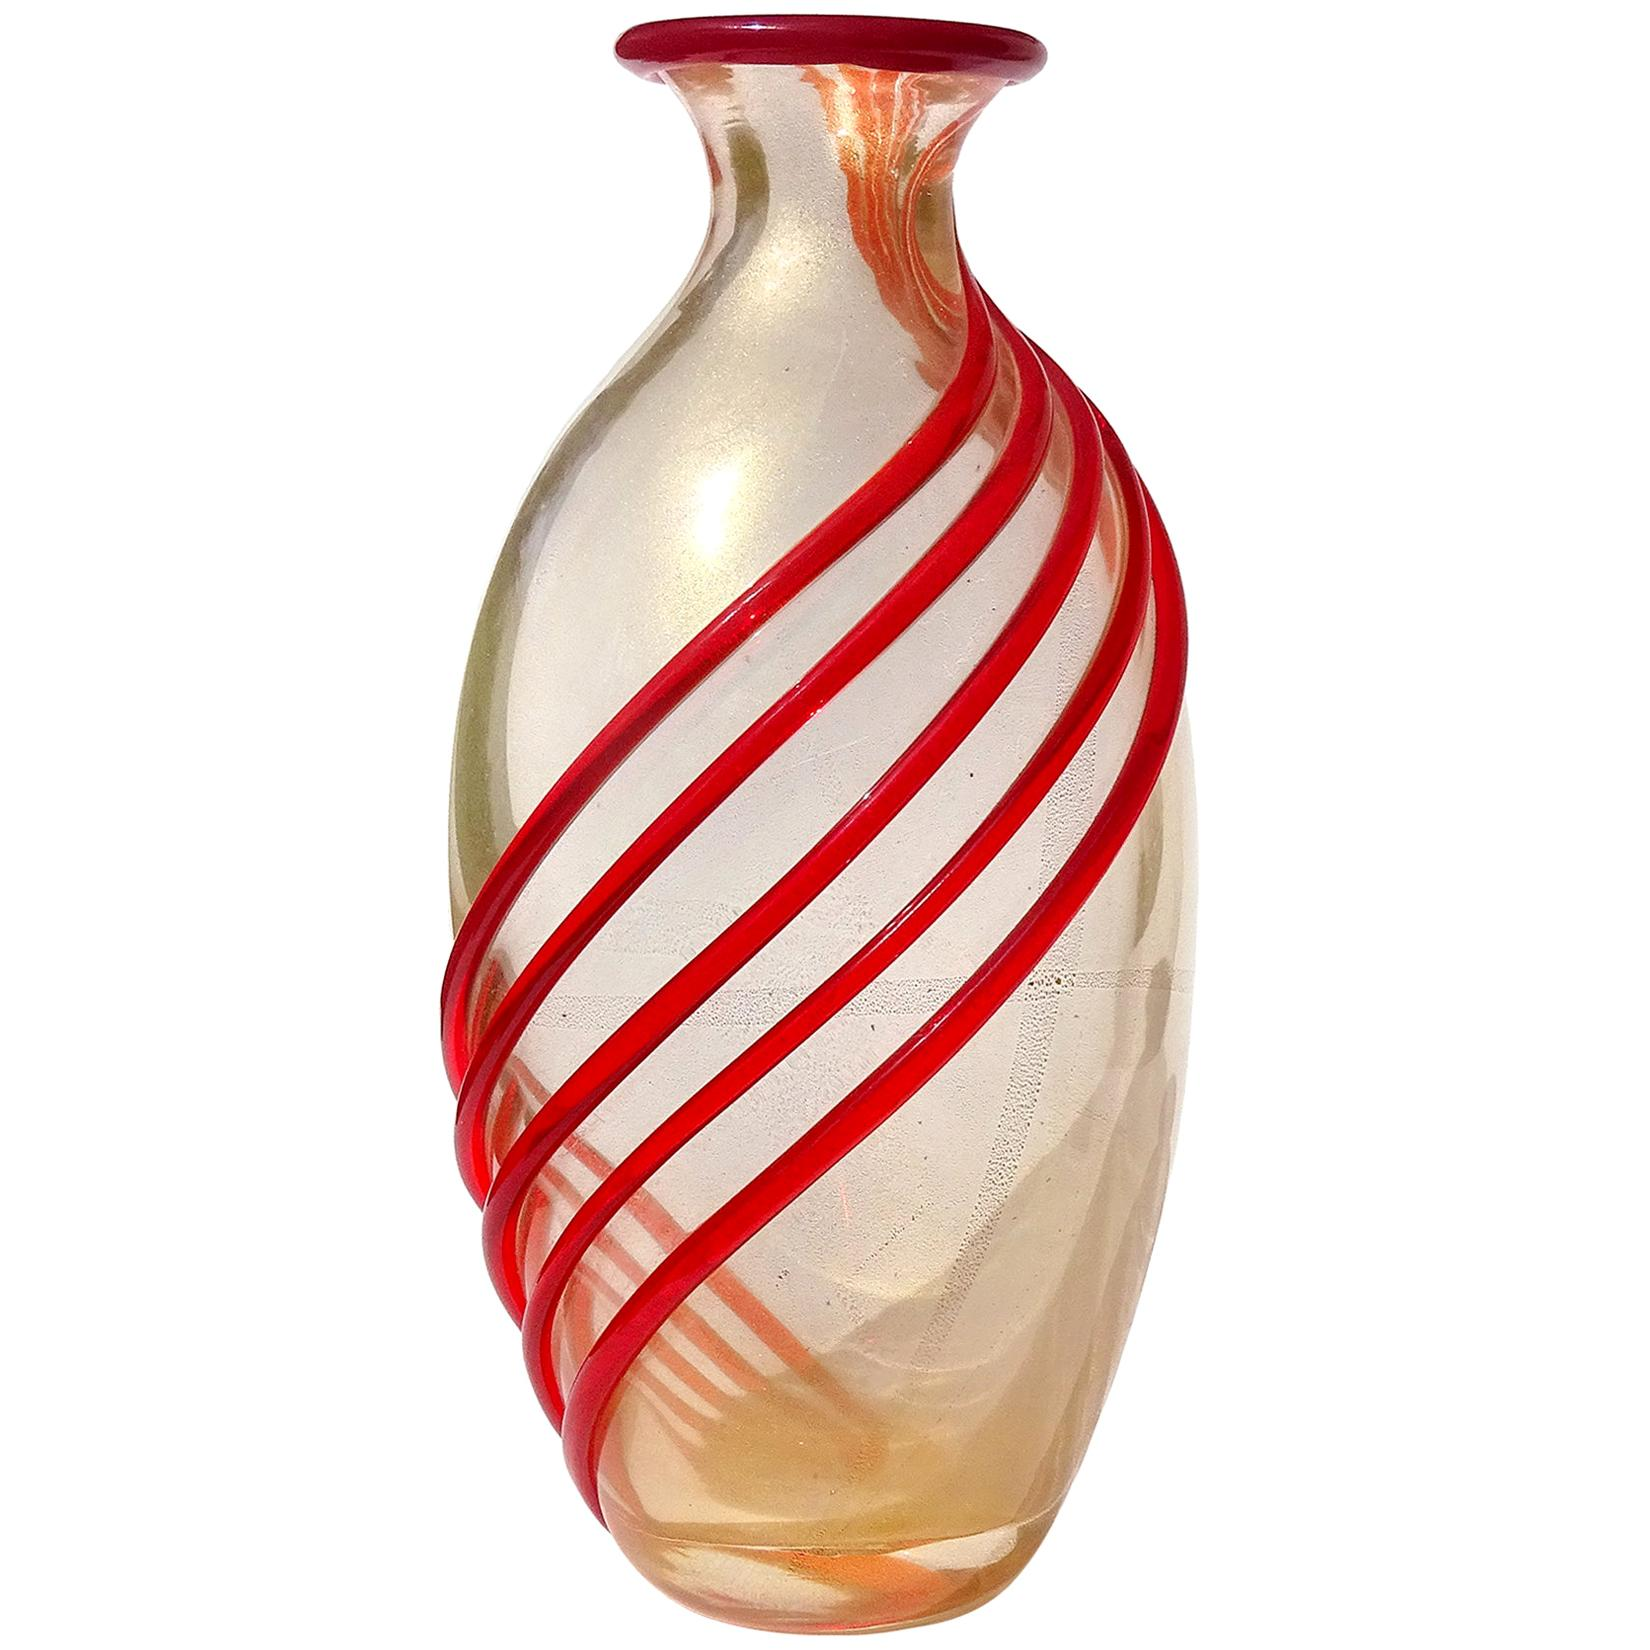 Archimede Seguso Murano Red Bands Gold Flecks Italian Art Glass Flower Vase